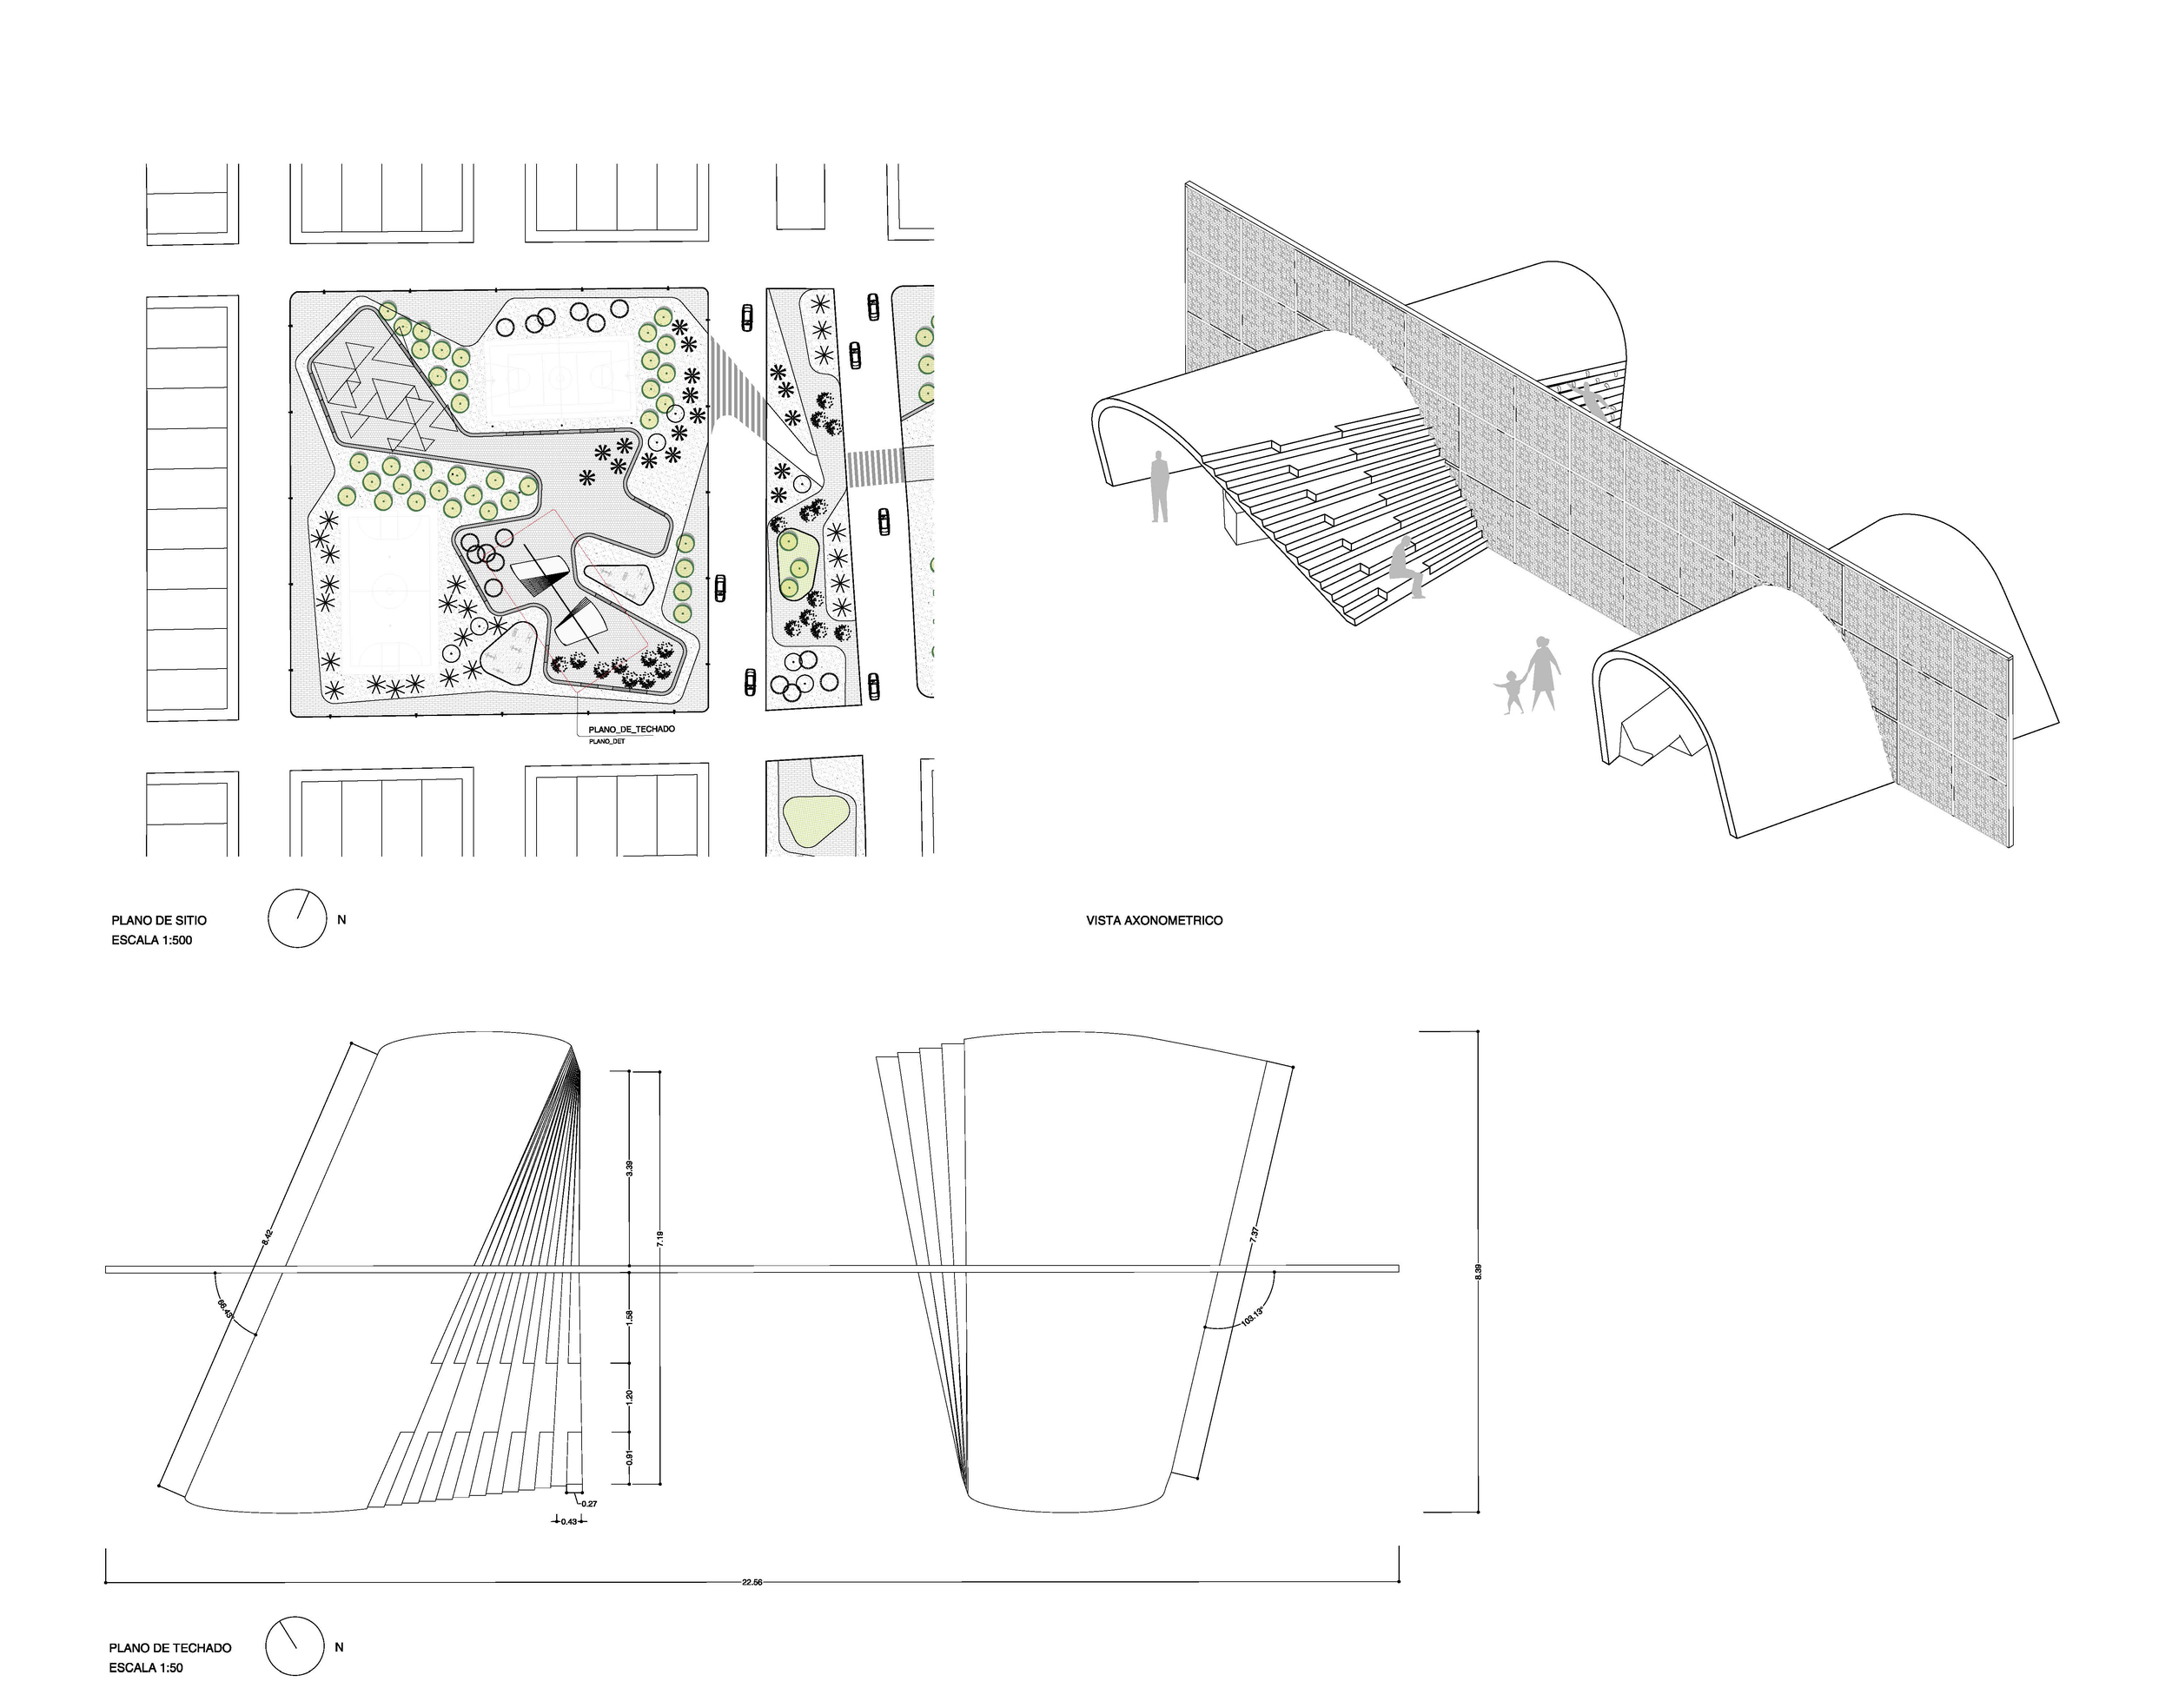 Site plan and axonometric view